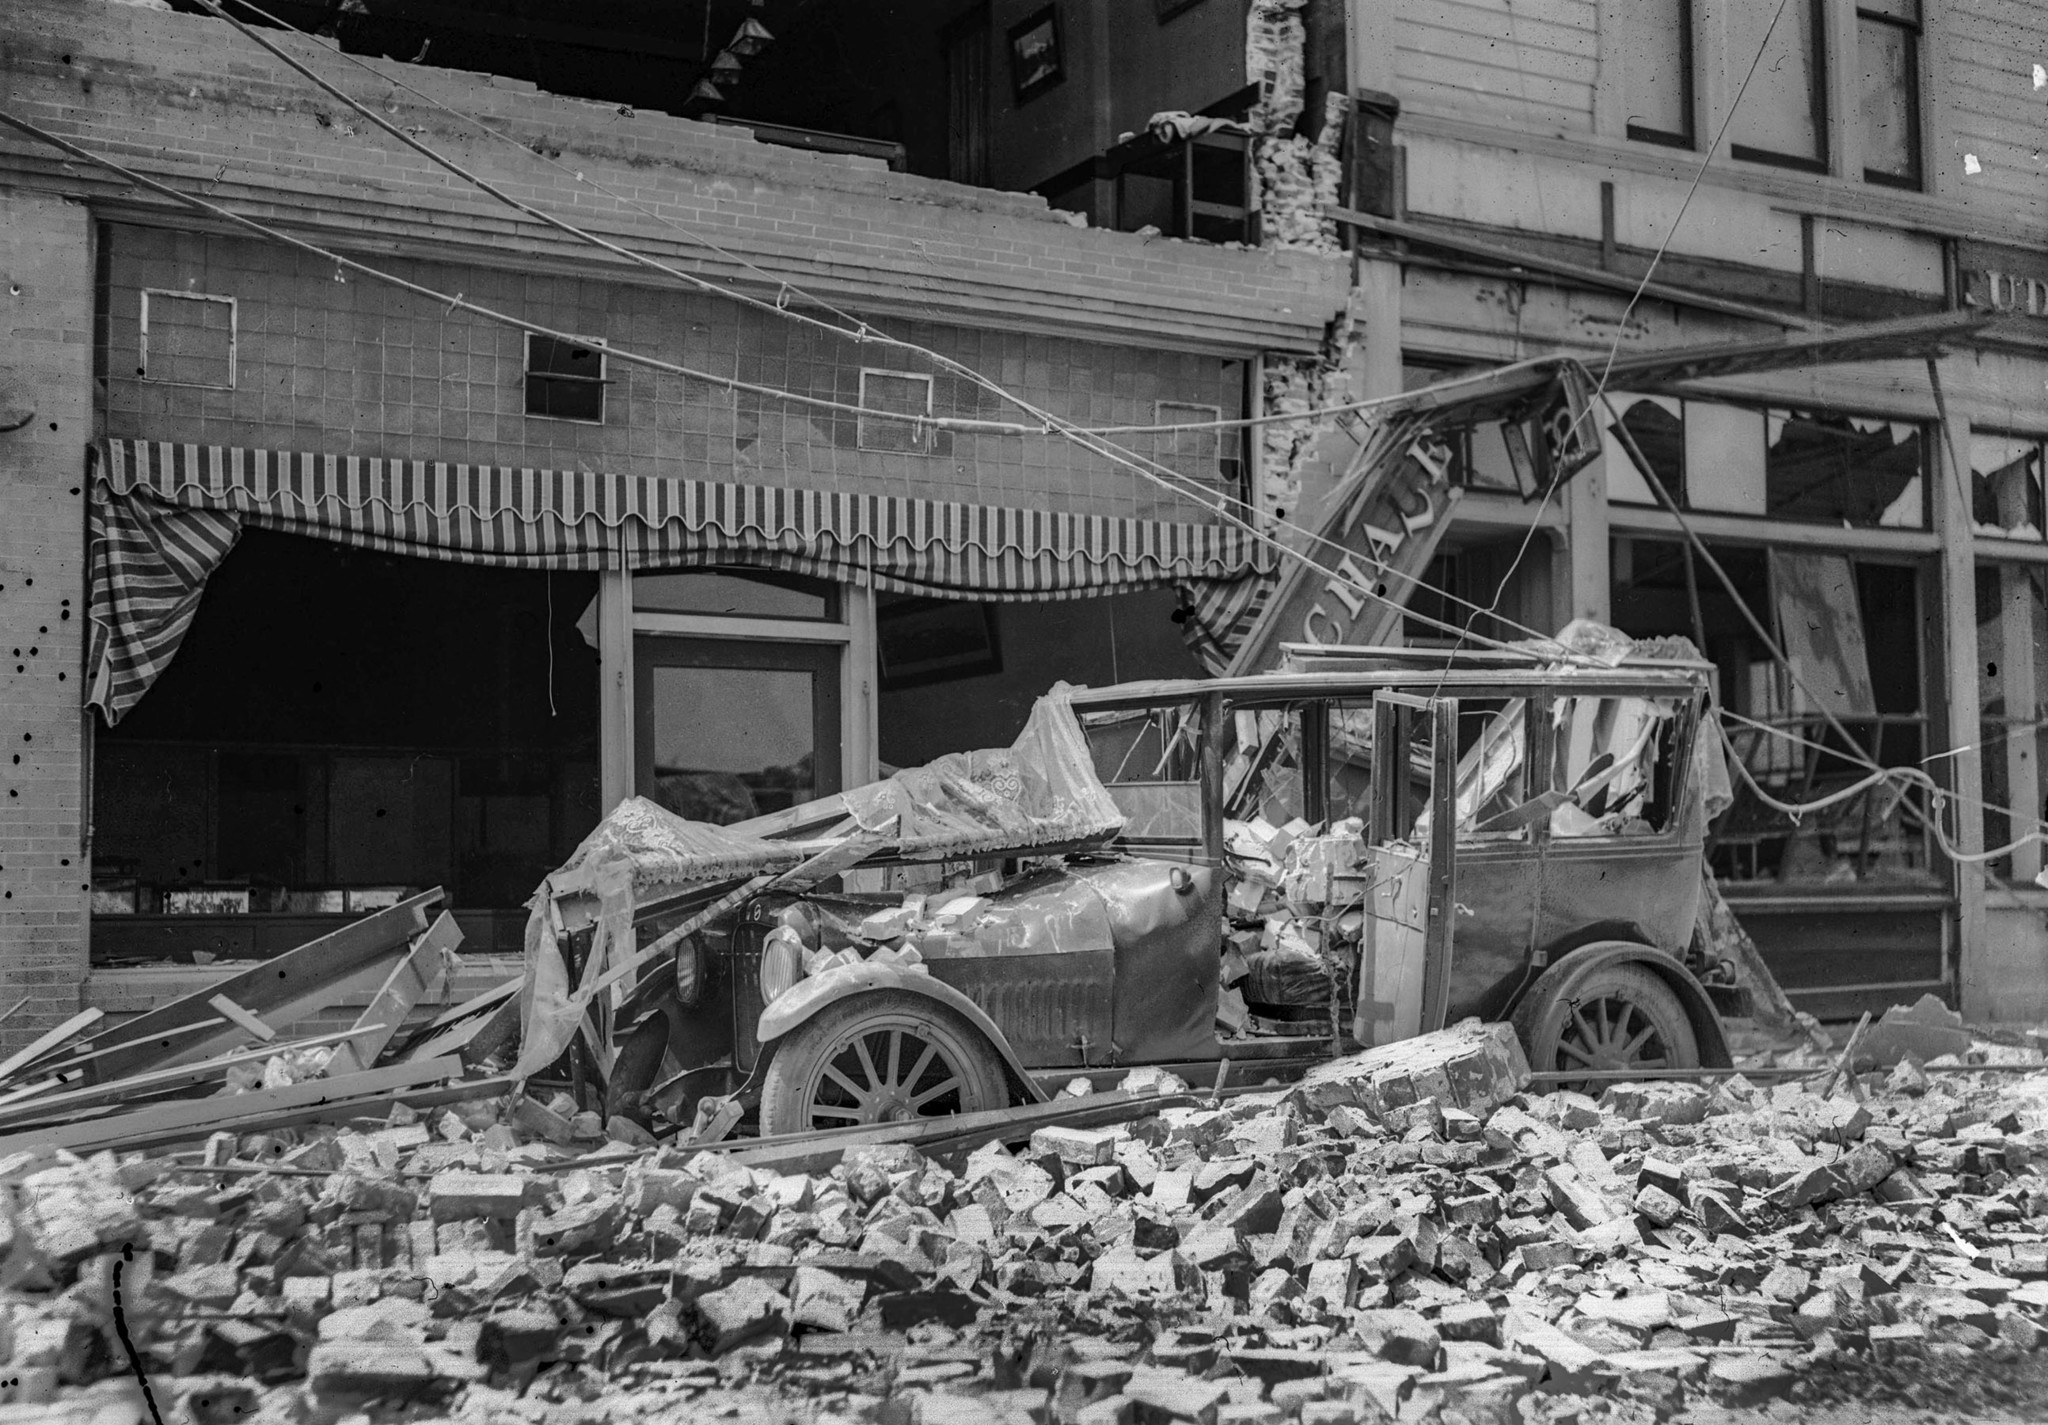 June 1925: Vehicle in Santa Barbara damaged by the June 29, 1925 earthquake. The small black dots on